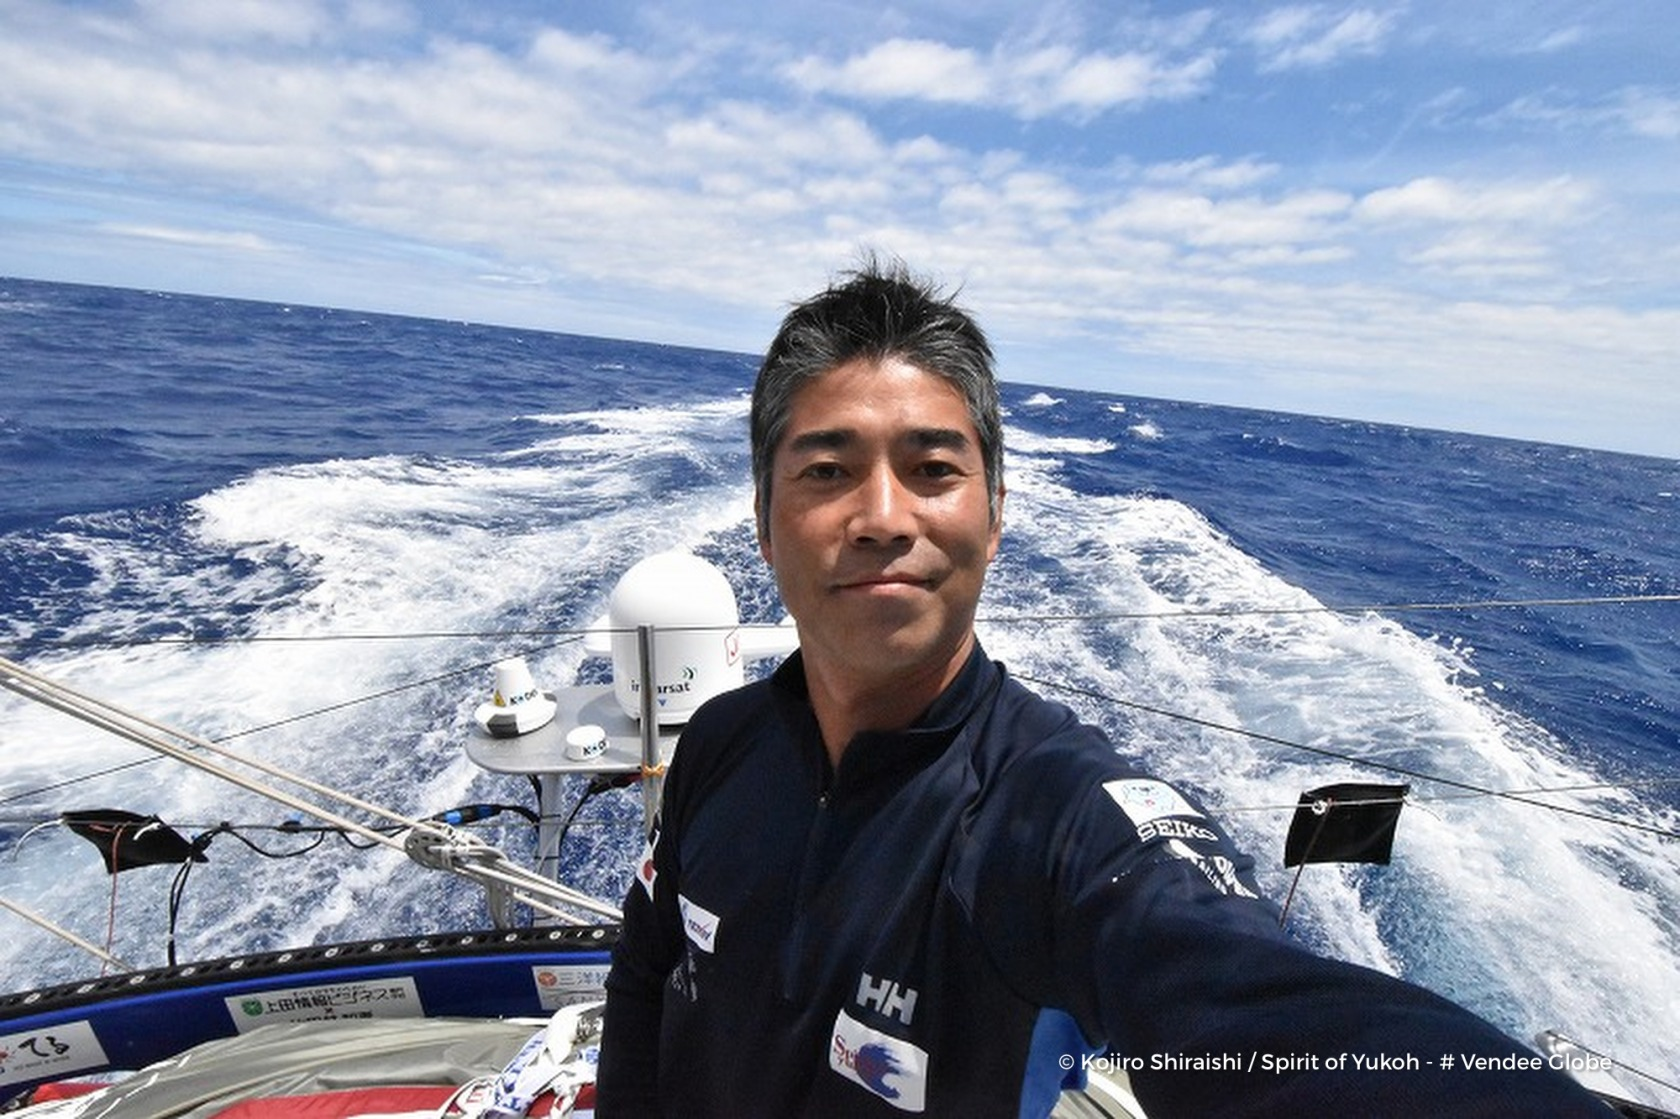 Photo sent from the boat Spirit of Yukoh, on November 30th, 2016 - Photo Kojiro ShiraishiPhoto envoyée depuis le bateau Spirit of Yukoh le 30 Novembre 2016 - Photo Kojiro Shiraishi